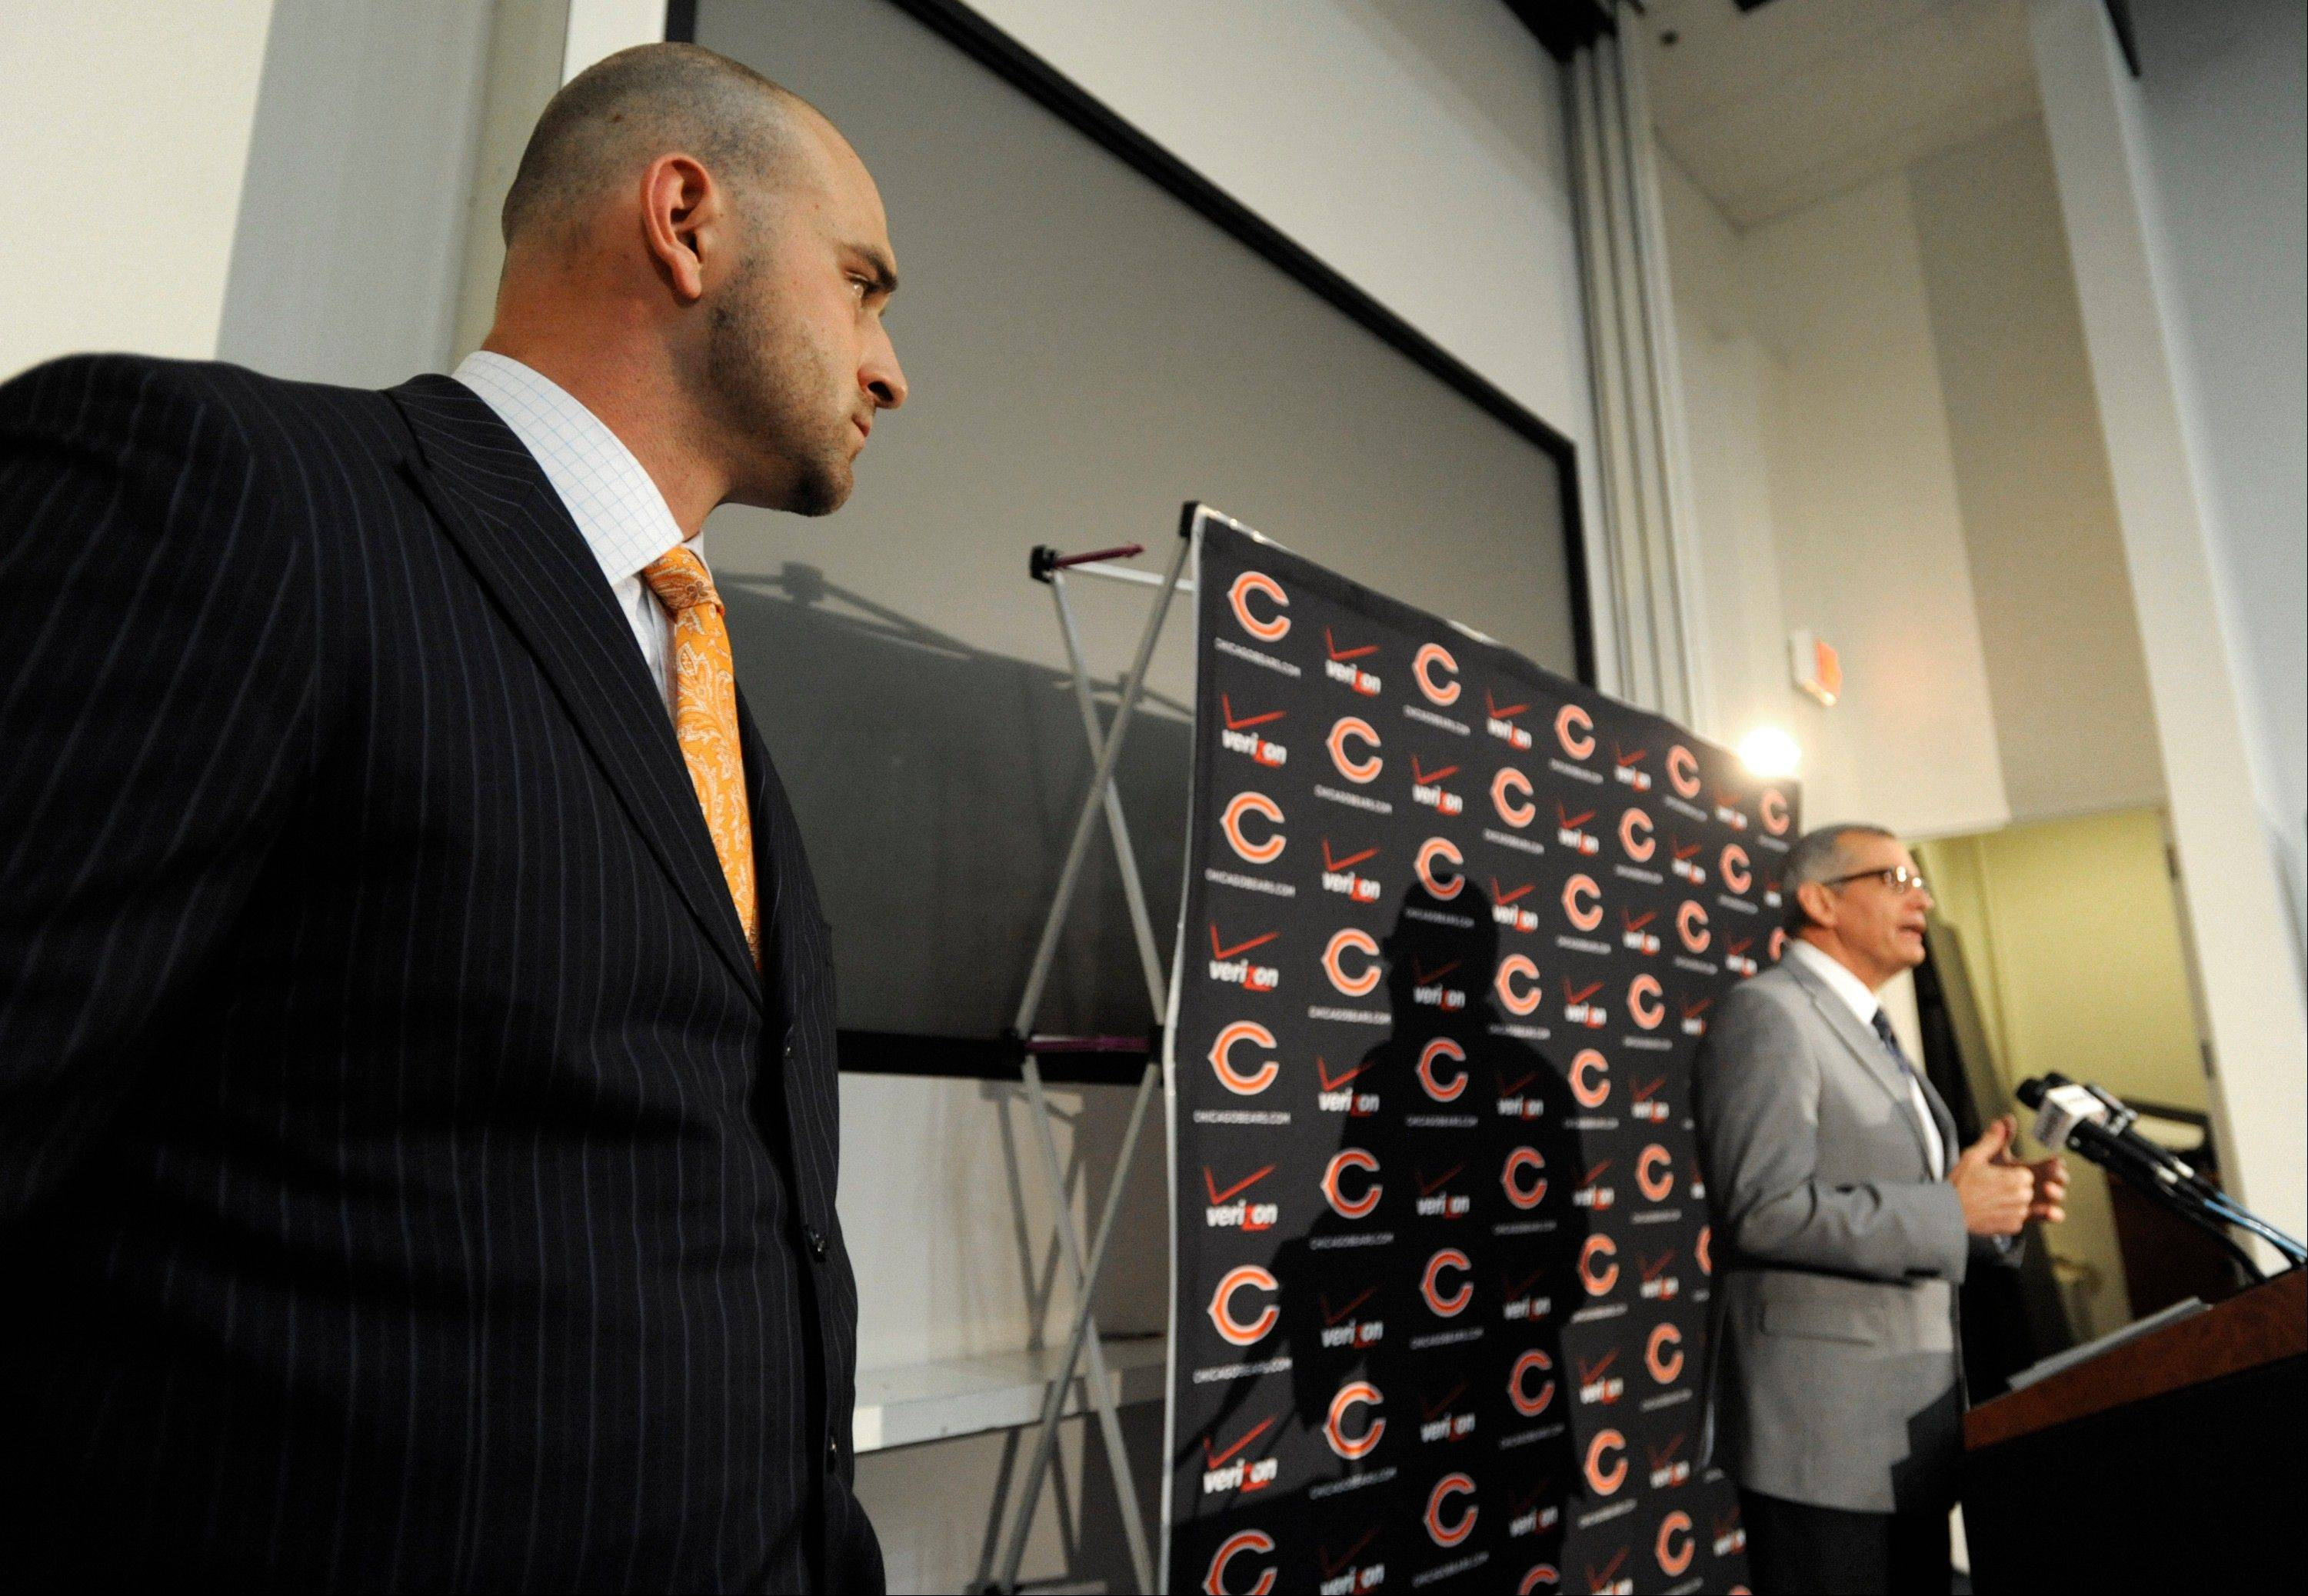 Bears first-round draft pick Kyle Long, left, waits to be introduced to the media by general manager Phil Emery during an NFL football news conference, Friday, April 26, 2013, at Halas Hall in Lake Forest, Ill.�Long, an offensive guard from Oregon, was selected 20th overall in Thursday's NFL draft.